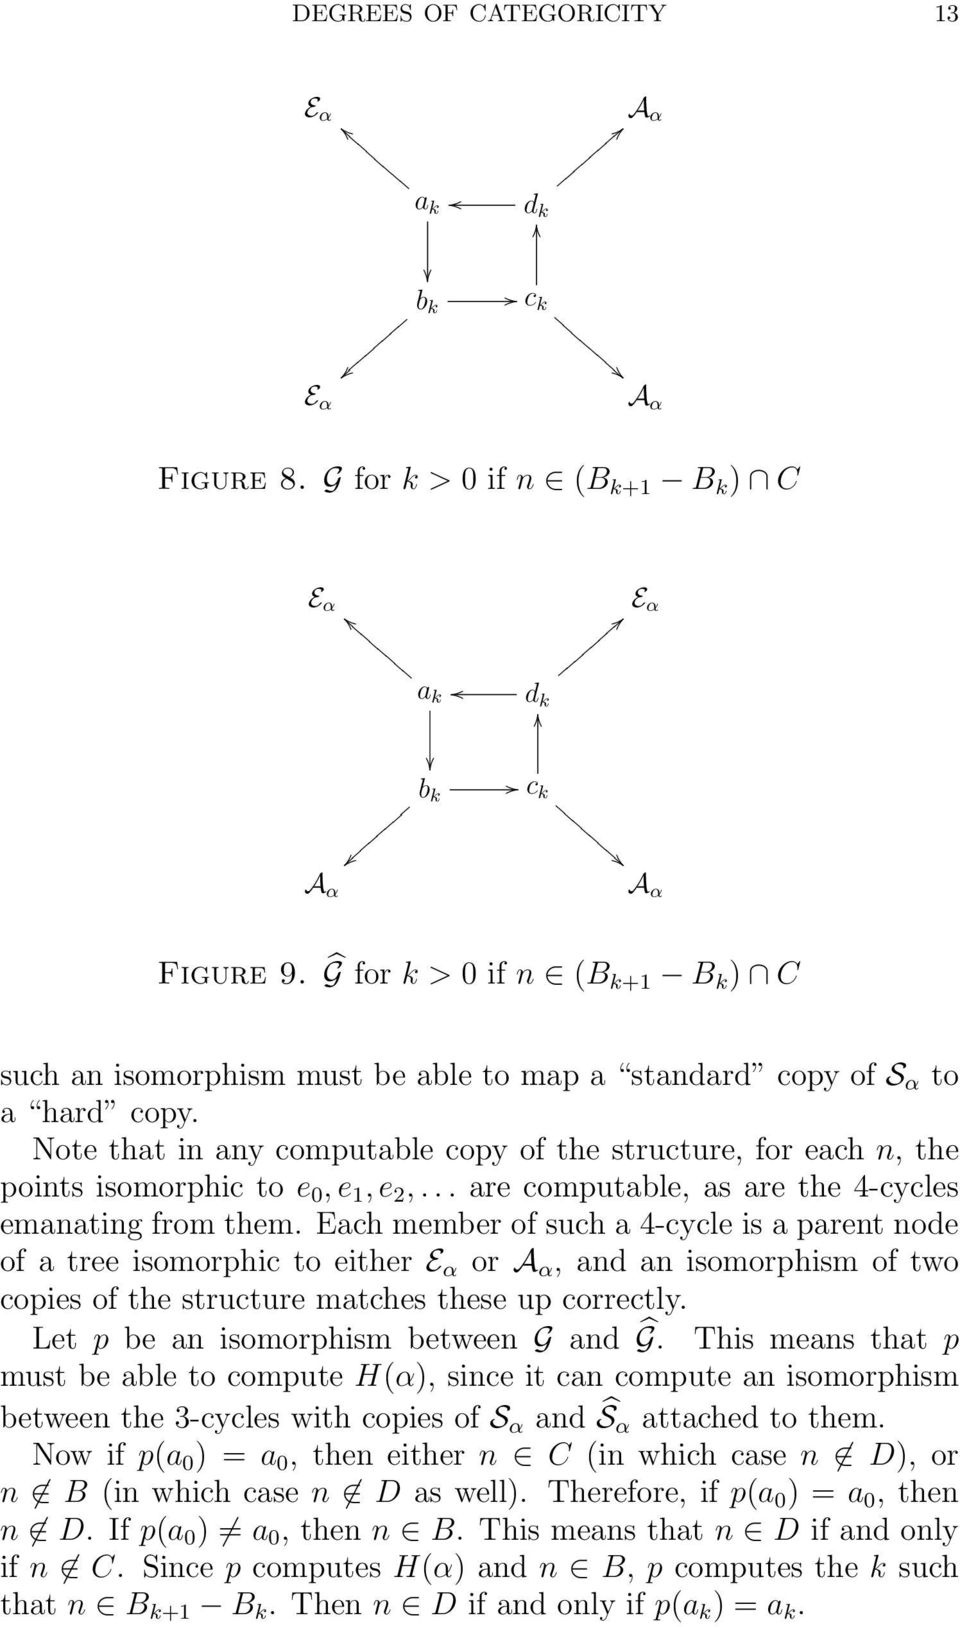 Note that in any computable copy of the structure, for each n, the points isomorphic to e 0, e 1, e 2,... are computable, as are the 4-cycles emanating from them.